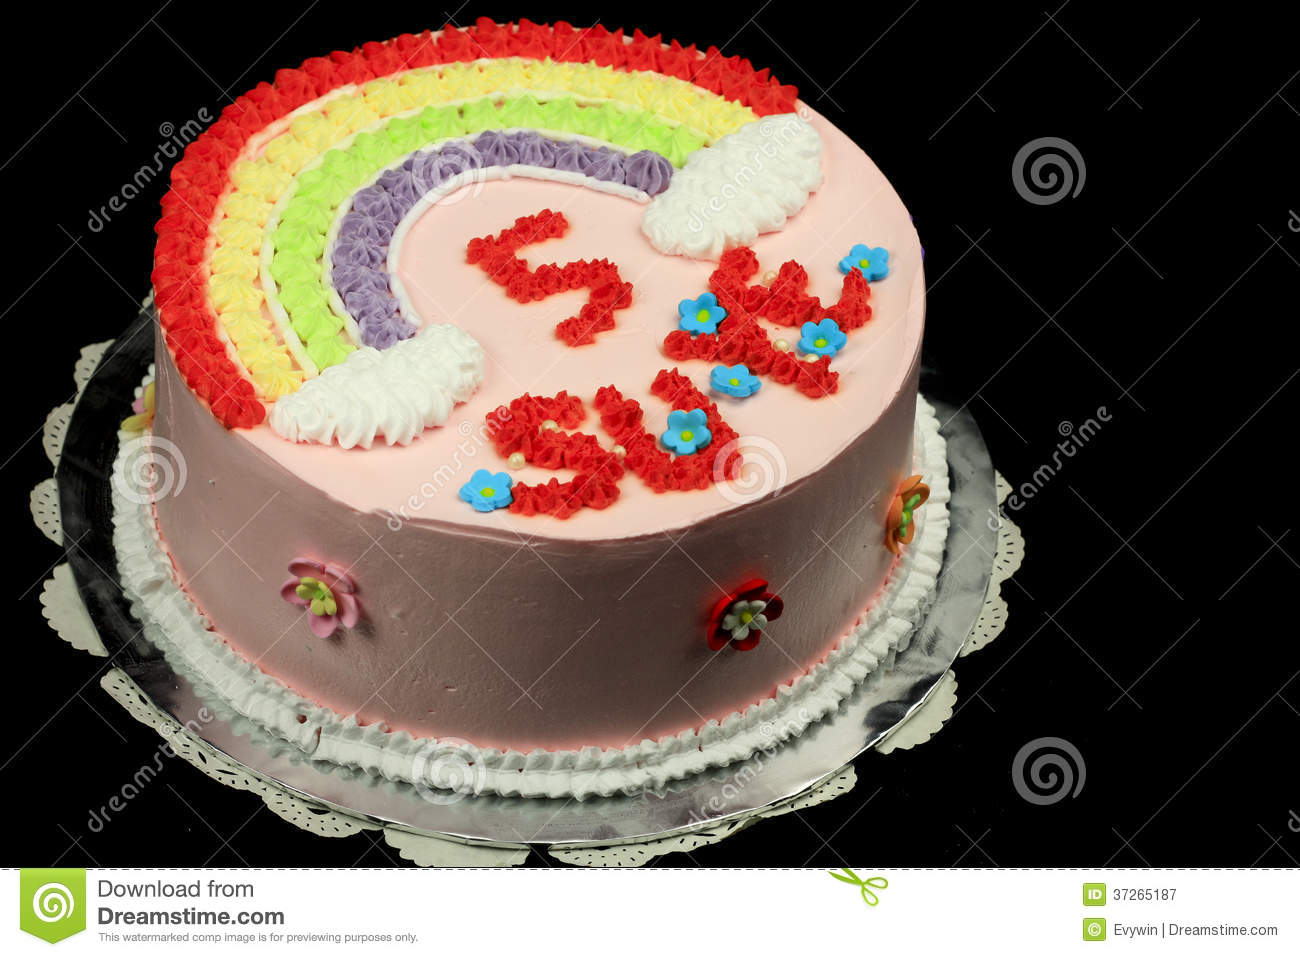 Birthday Cake Design Cream : Rainbow birthday cake stock image. Image of pattern ...